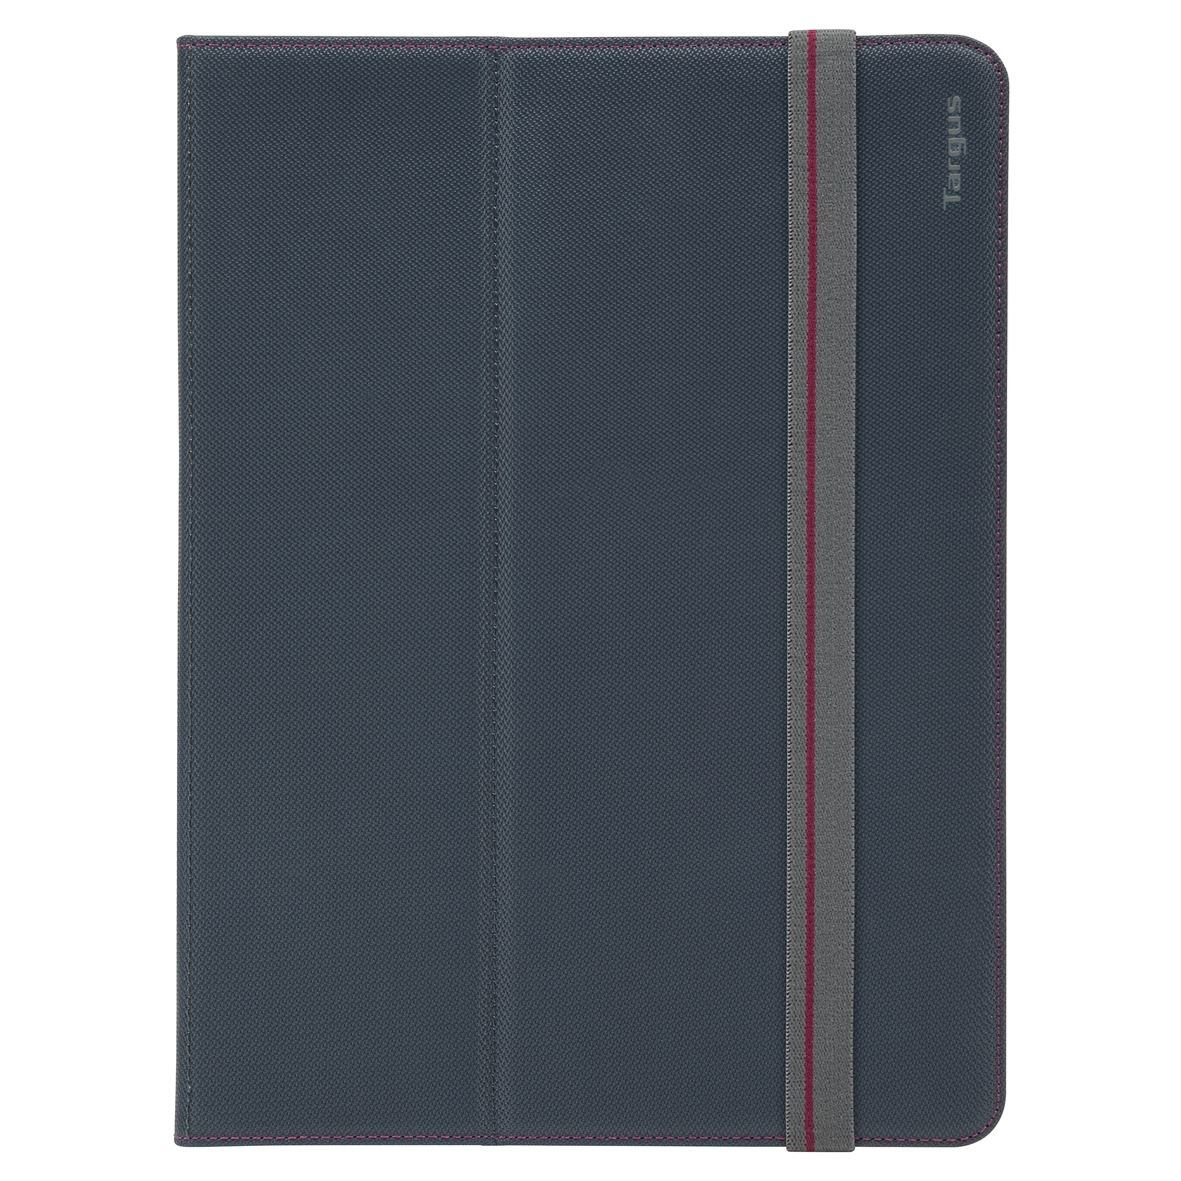 Fit-N-Grip Universal - Flip cover for tablet / eBook reader - gray - 10 inch